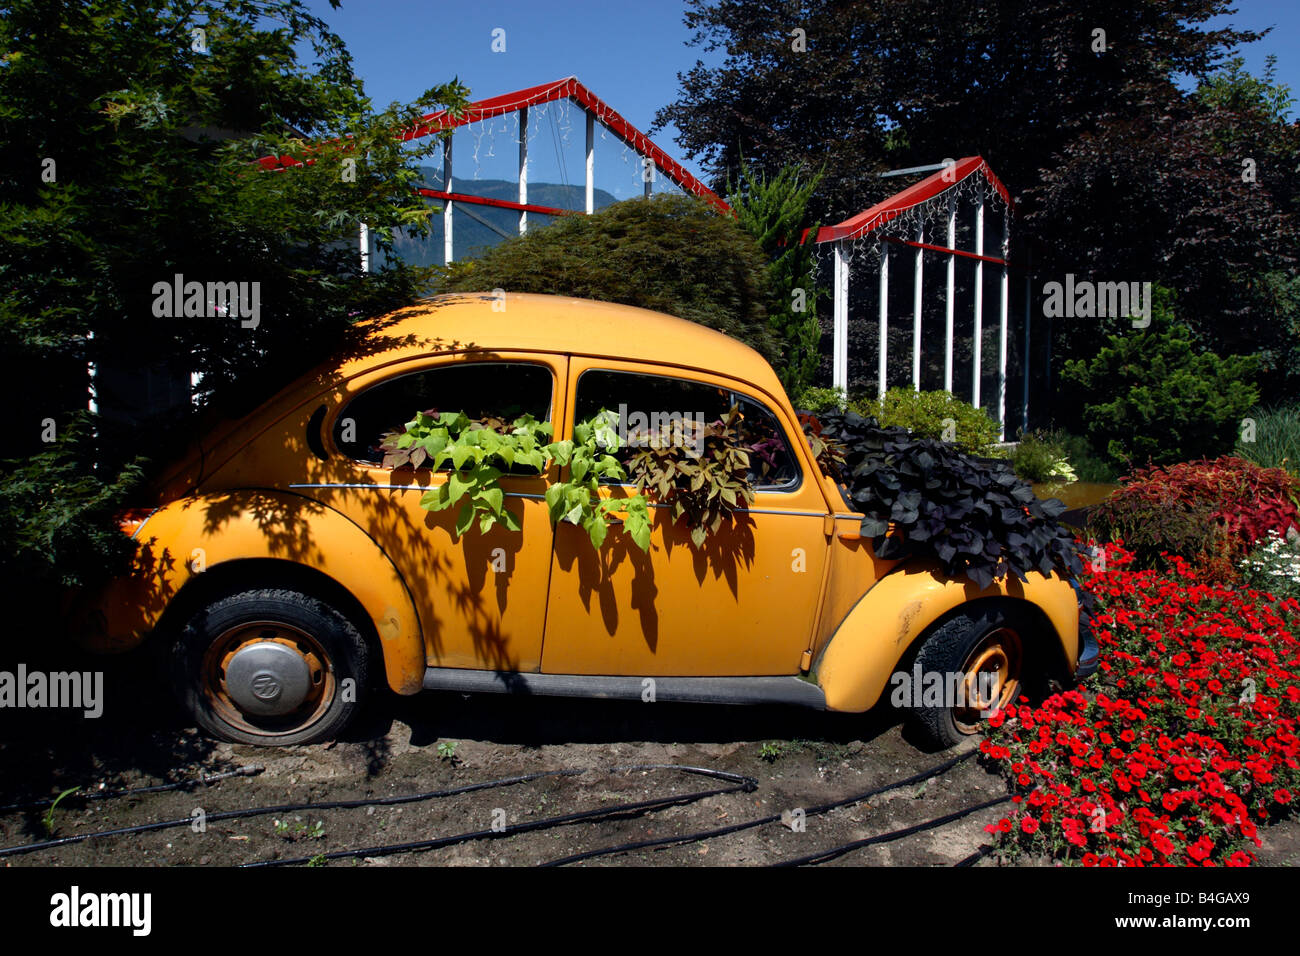 VW Beetle used to advertise a garden centre, Postal-Burgstall, Italy, Postal-Burgstall, Italy - Stock Image